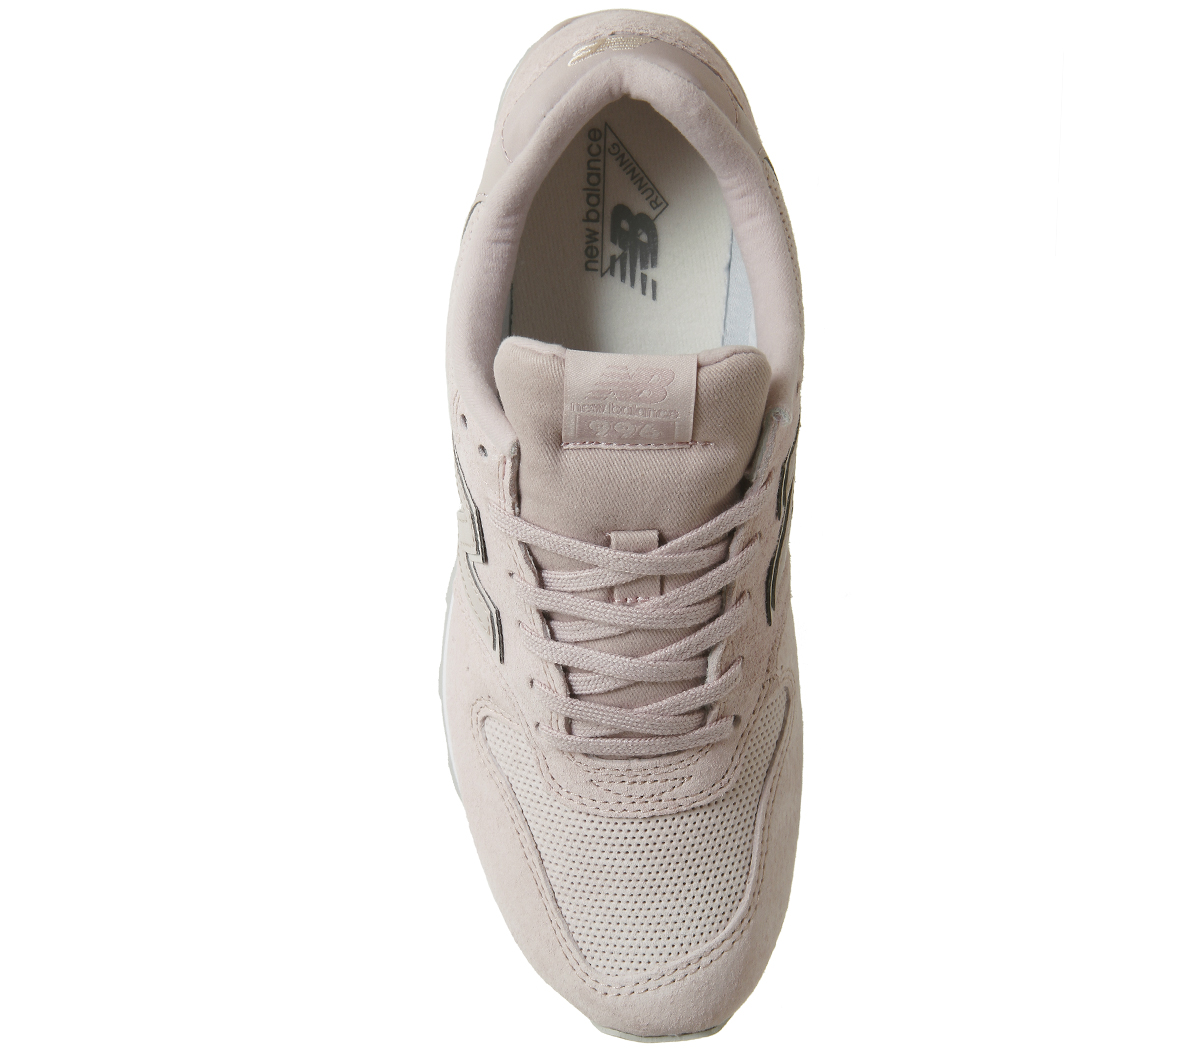 Femme New Trainers Balance Wr996 Trainers rose Trainers New chaussures 1aba0d